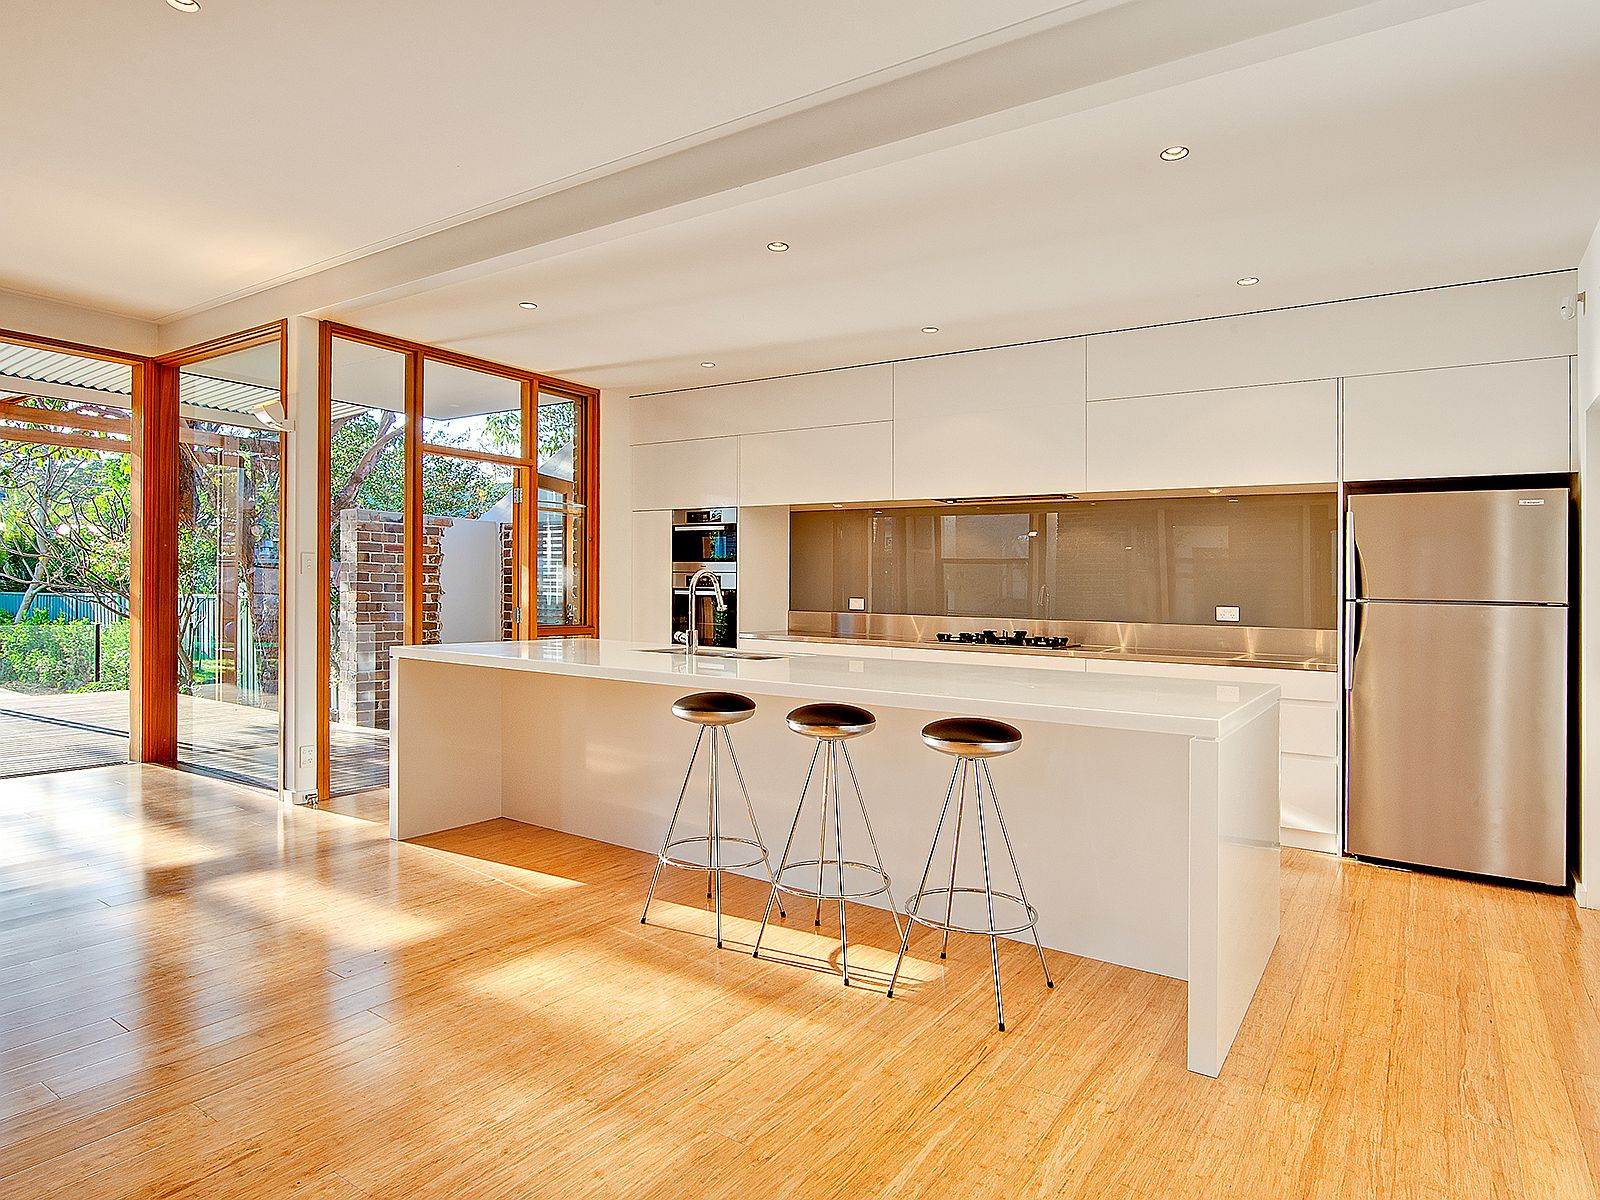 Wood-and-white-kitchen-of-the-Sydney-house-connected-with-the-wooden-deck-outside-70089